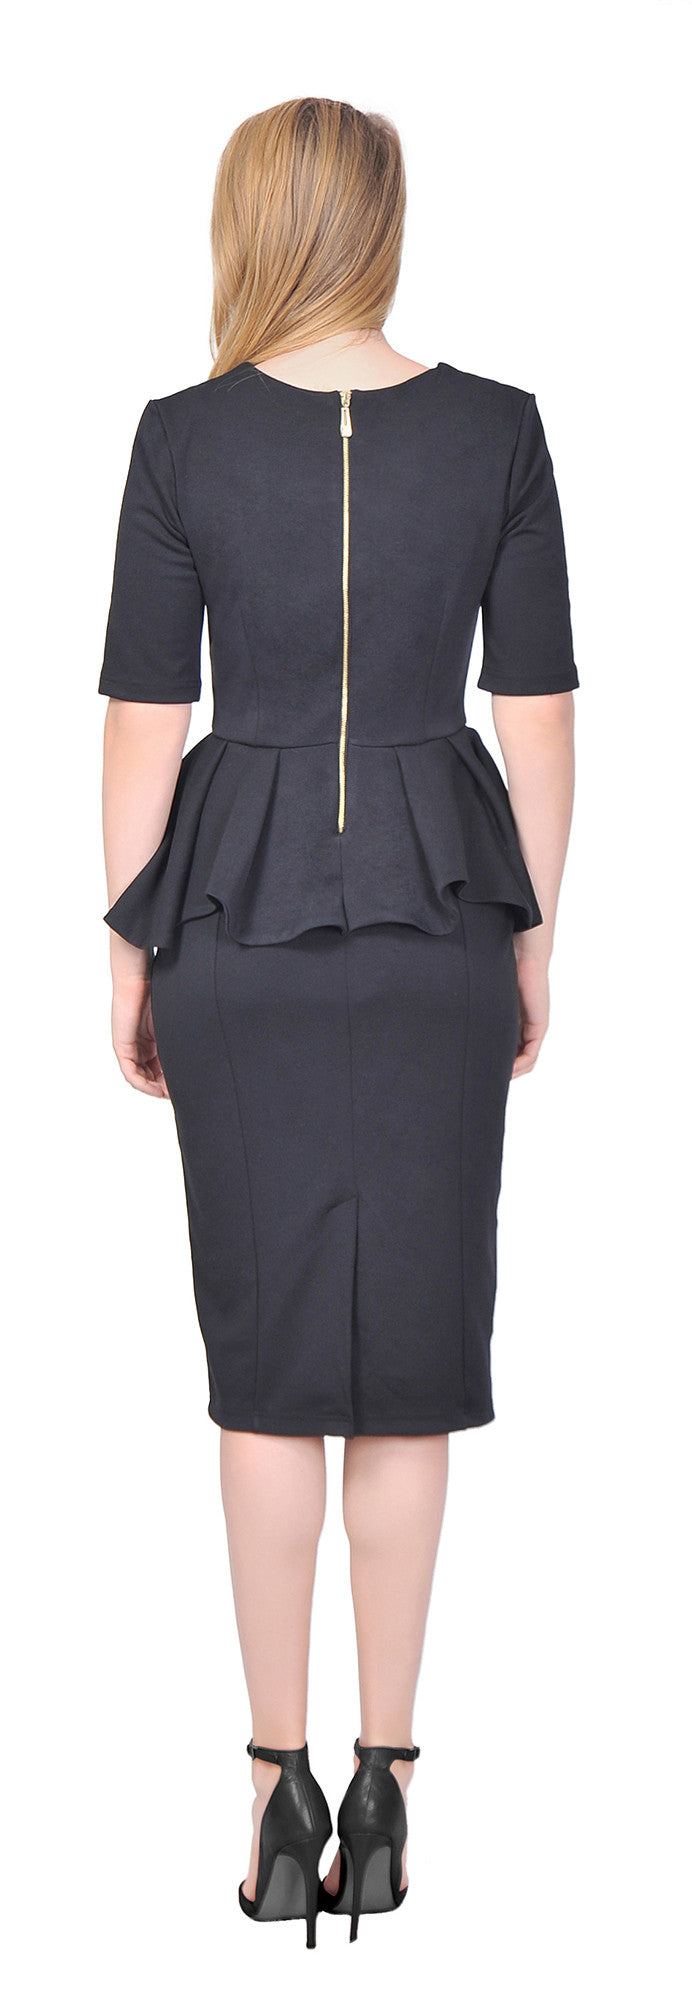 Women's Formal Classy Peplum Pencil Midi Dress For Work Office Church